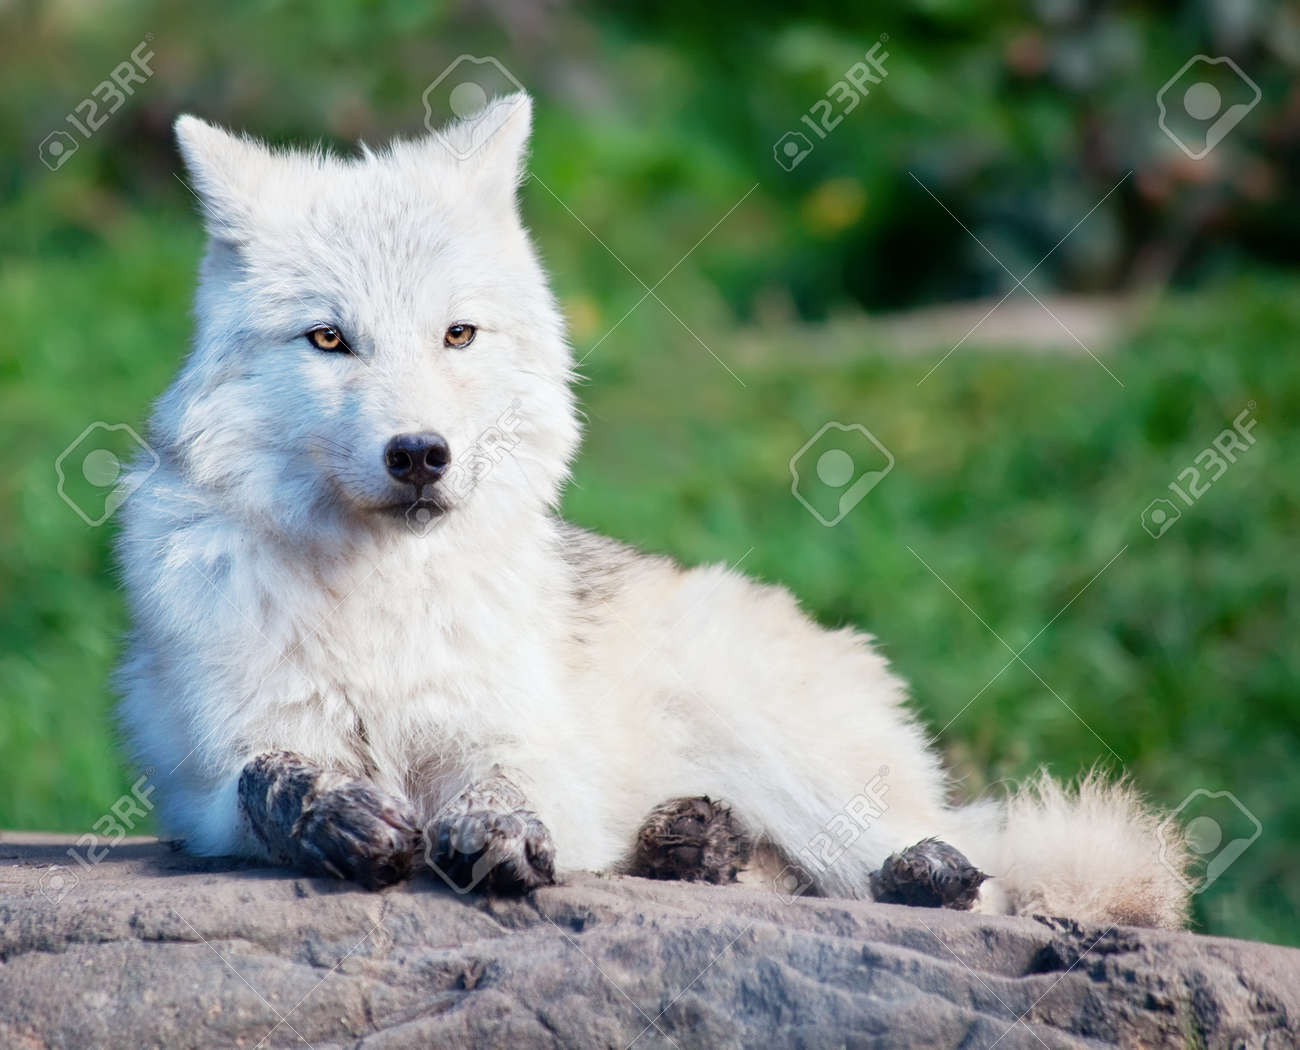 7984153-Young-Arctic-Wolf-Lying-Down-a-Rock-Stock-Photo.jpg